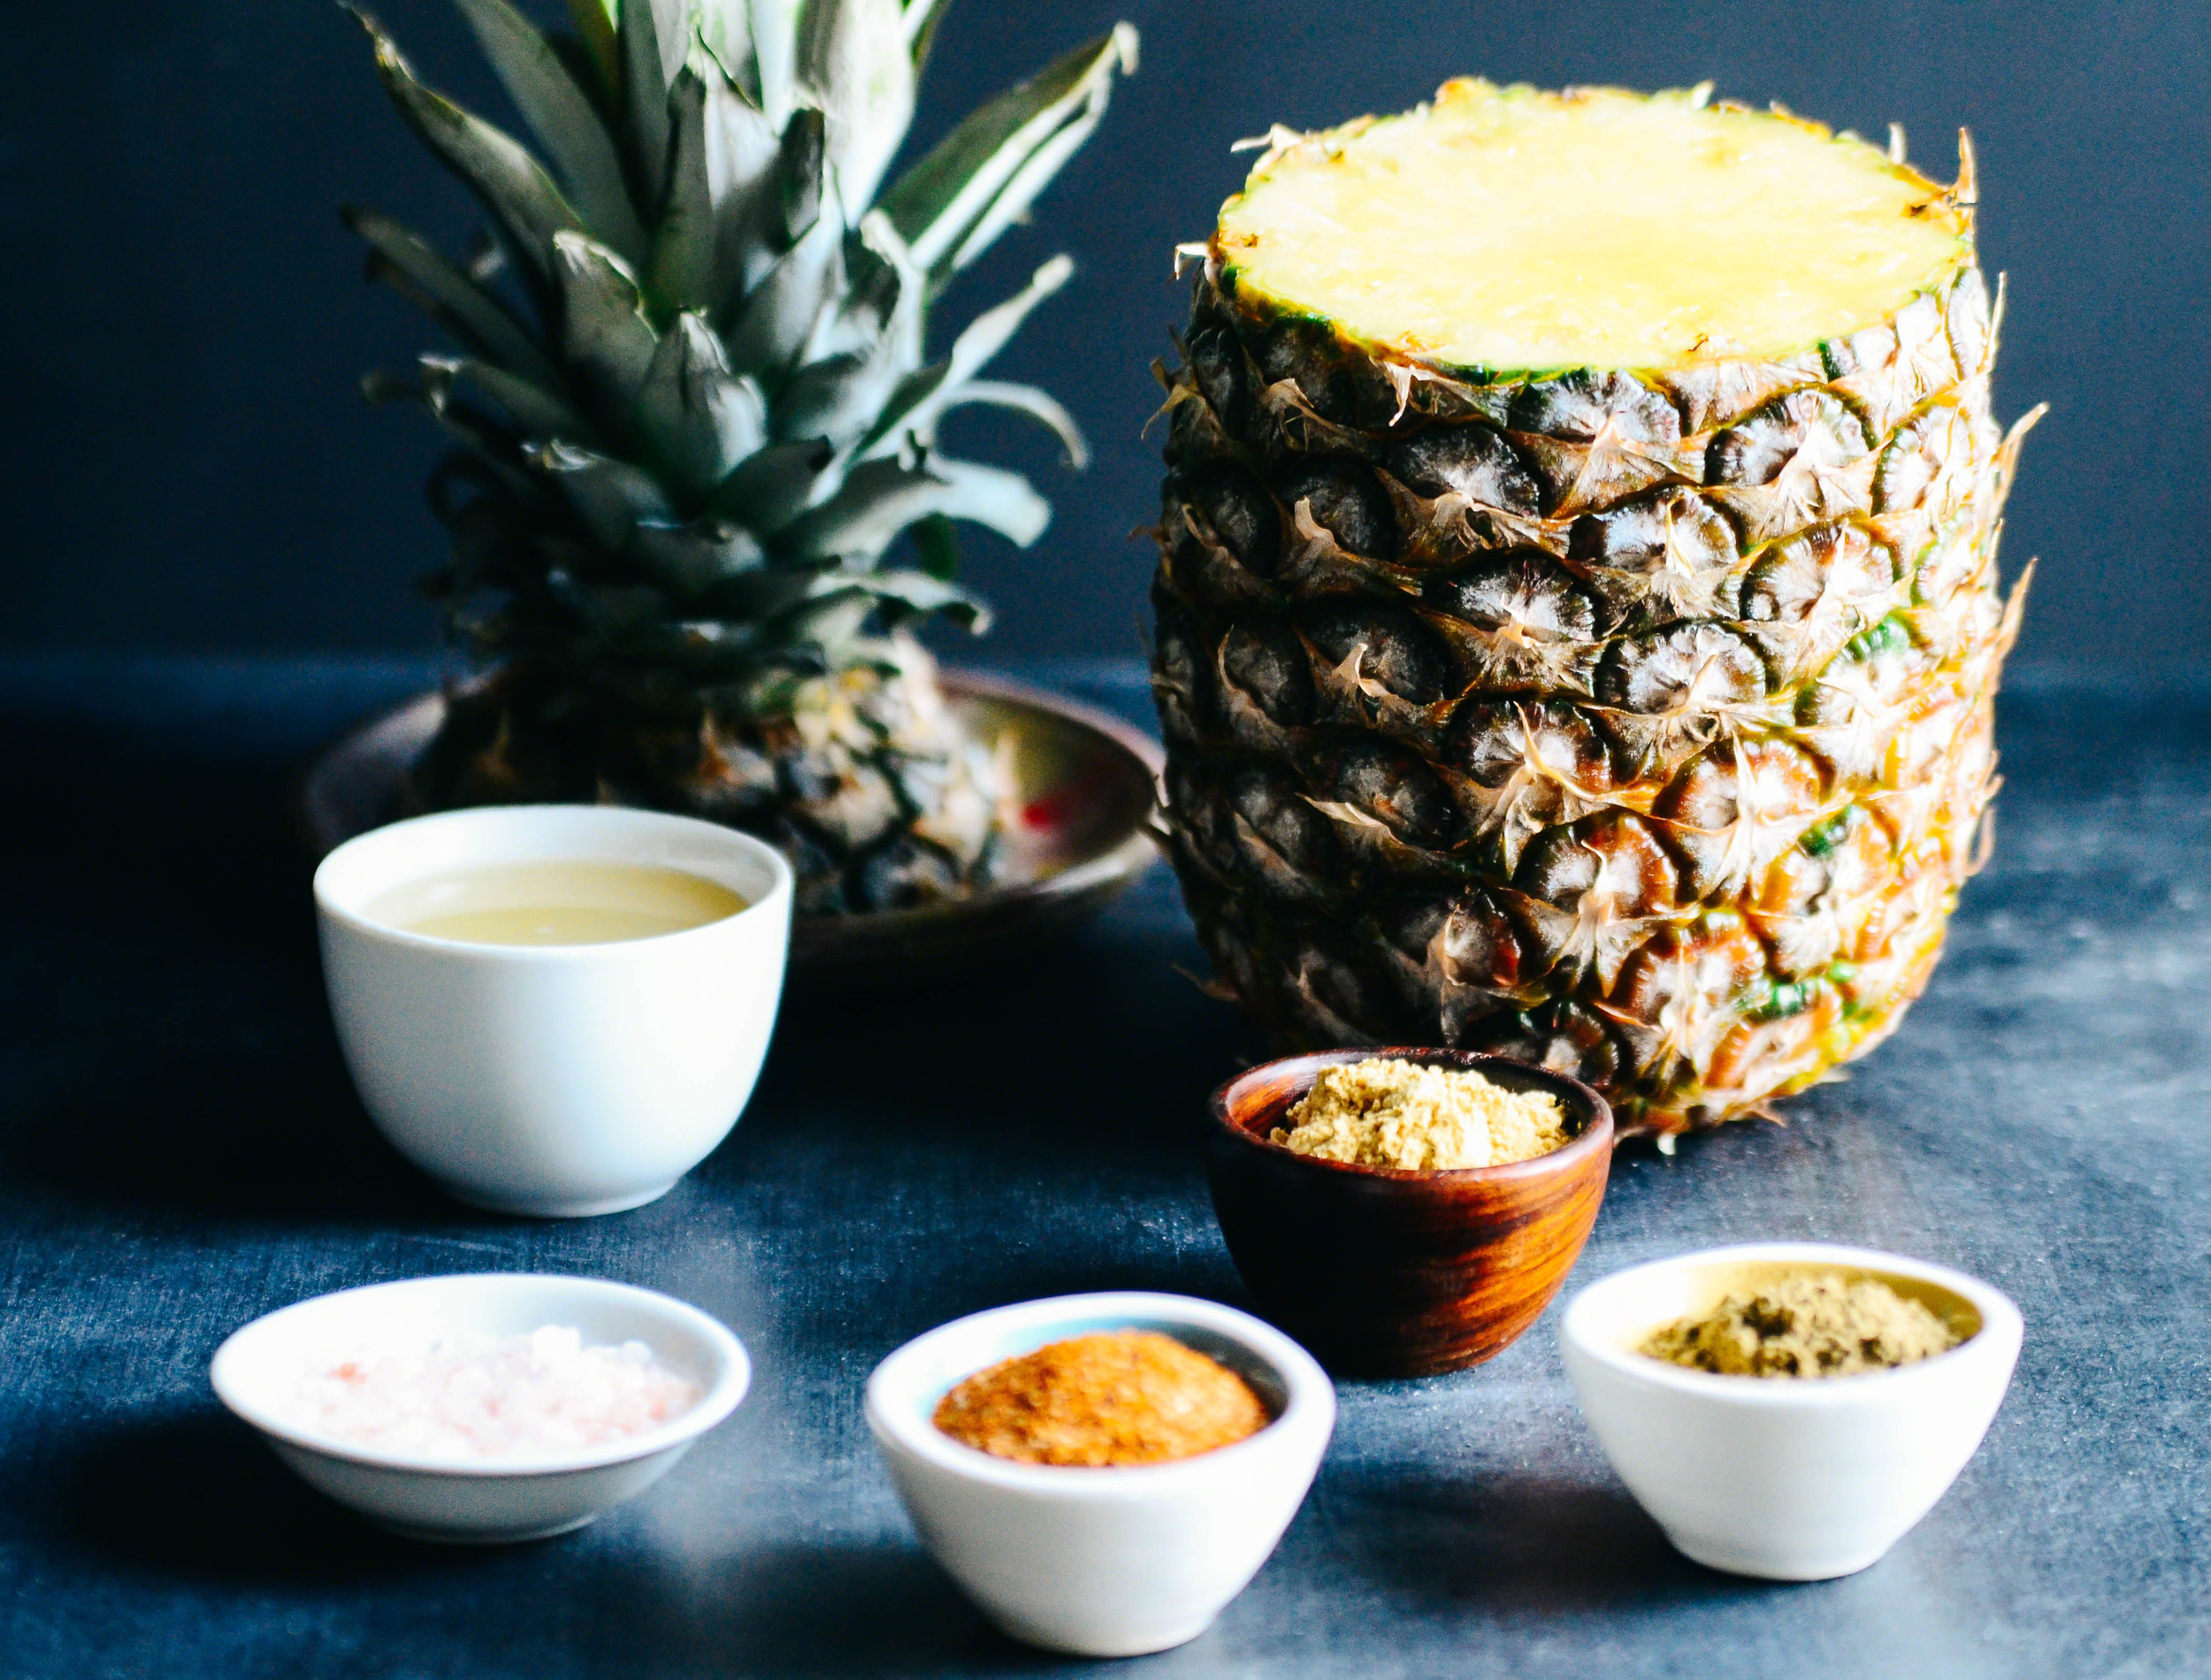 dm-Pineapple Lemon Ginger-ingredient-wide.jpg